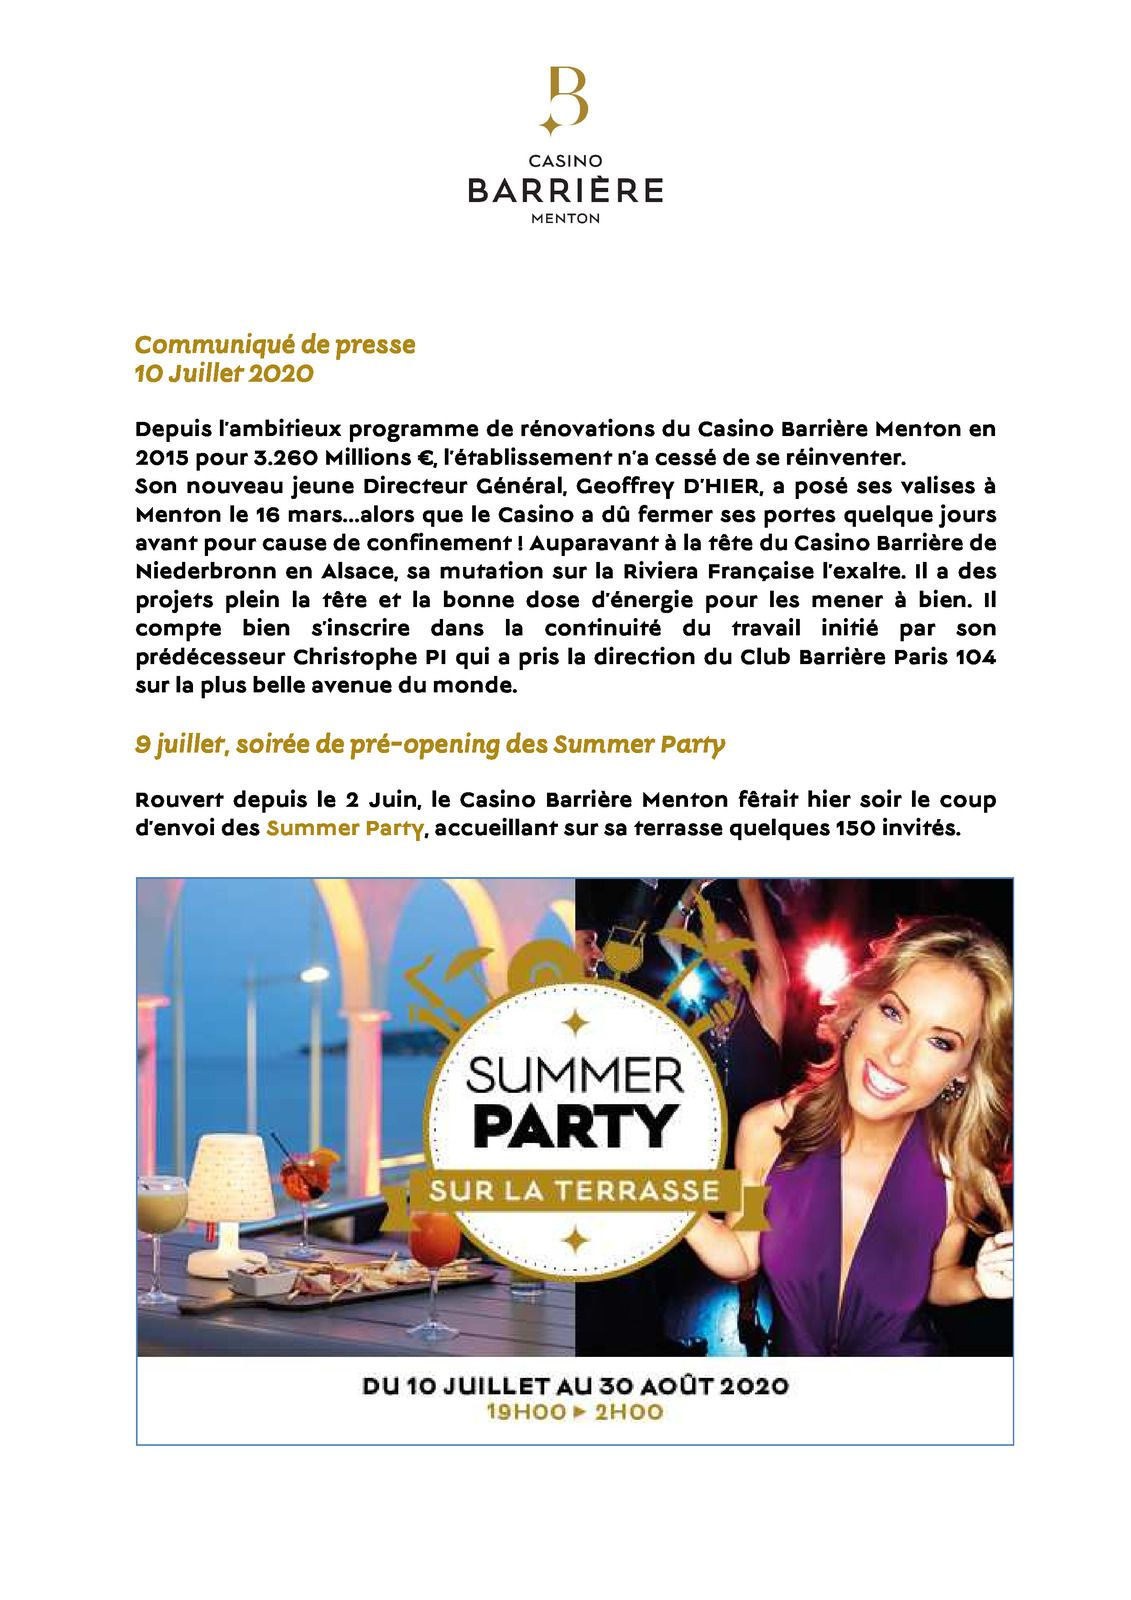 CASINO BARRIERE SUMMER PARTY MENTON DU 9 JUILLET